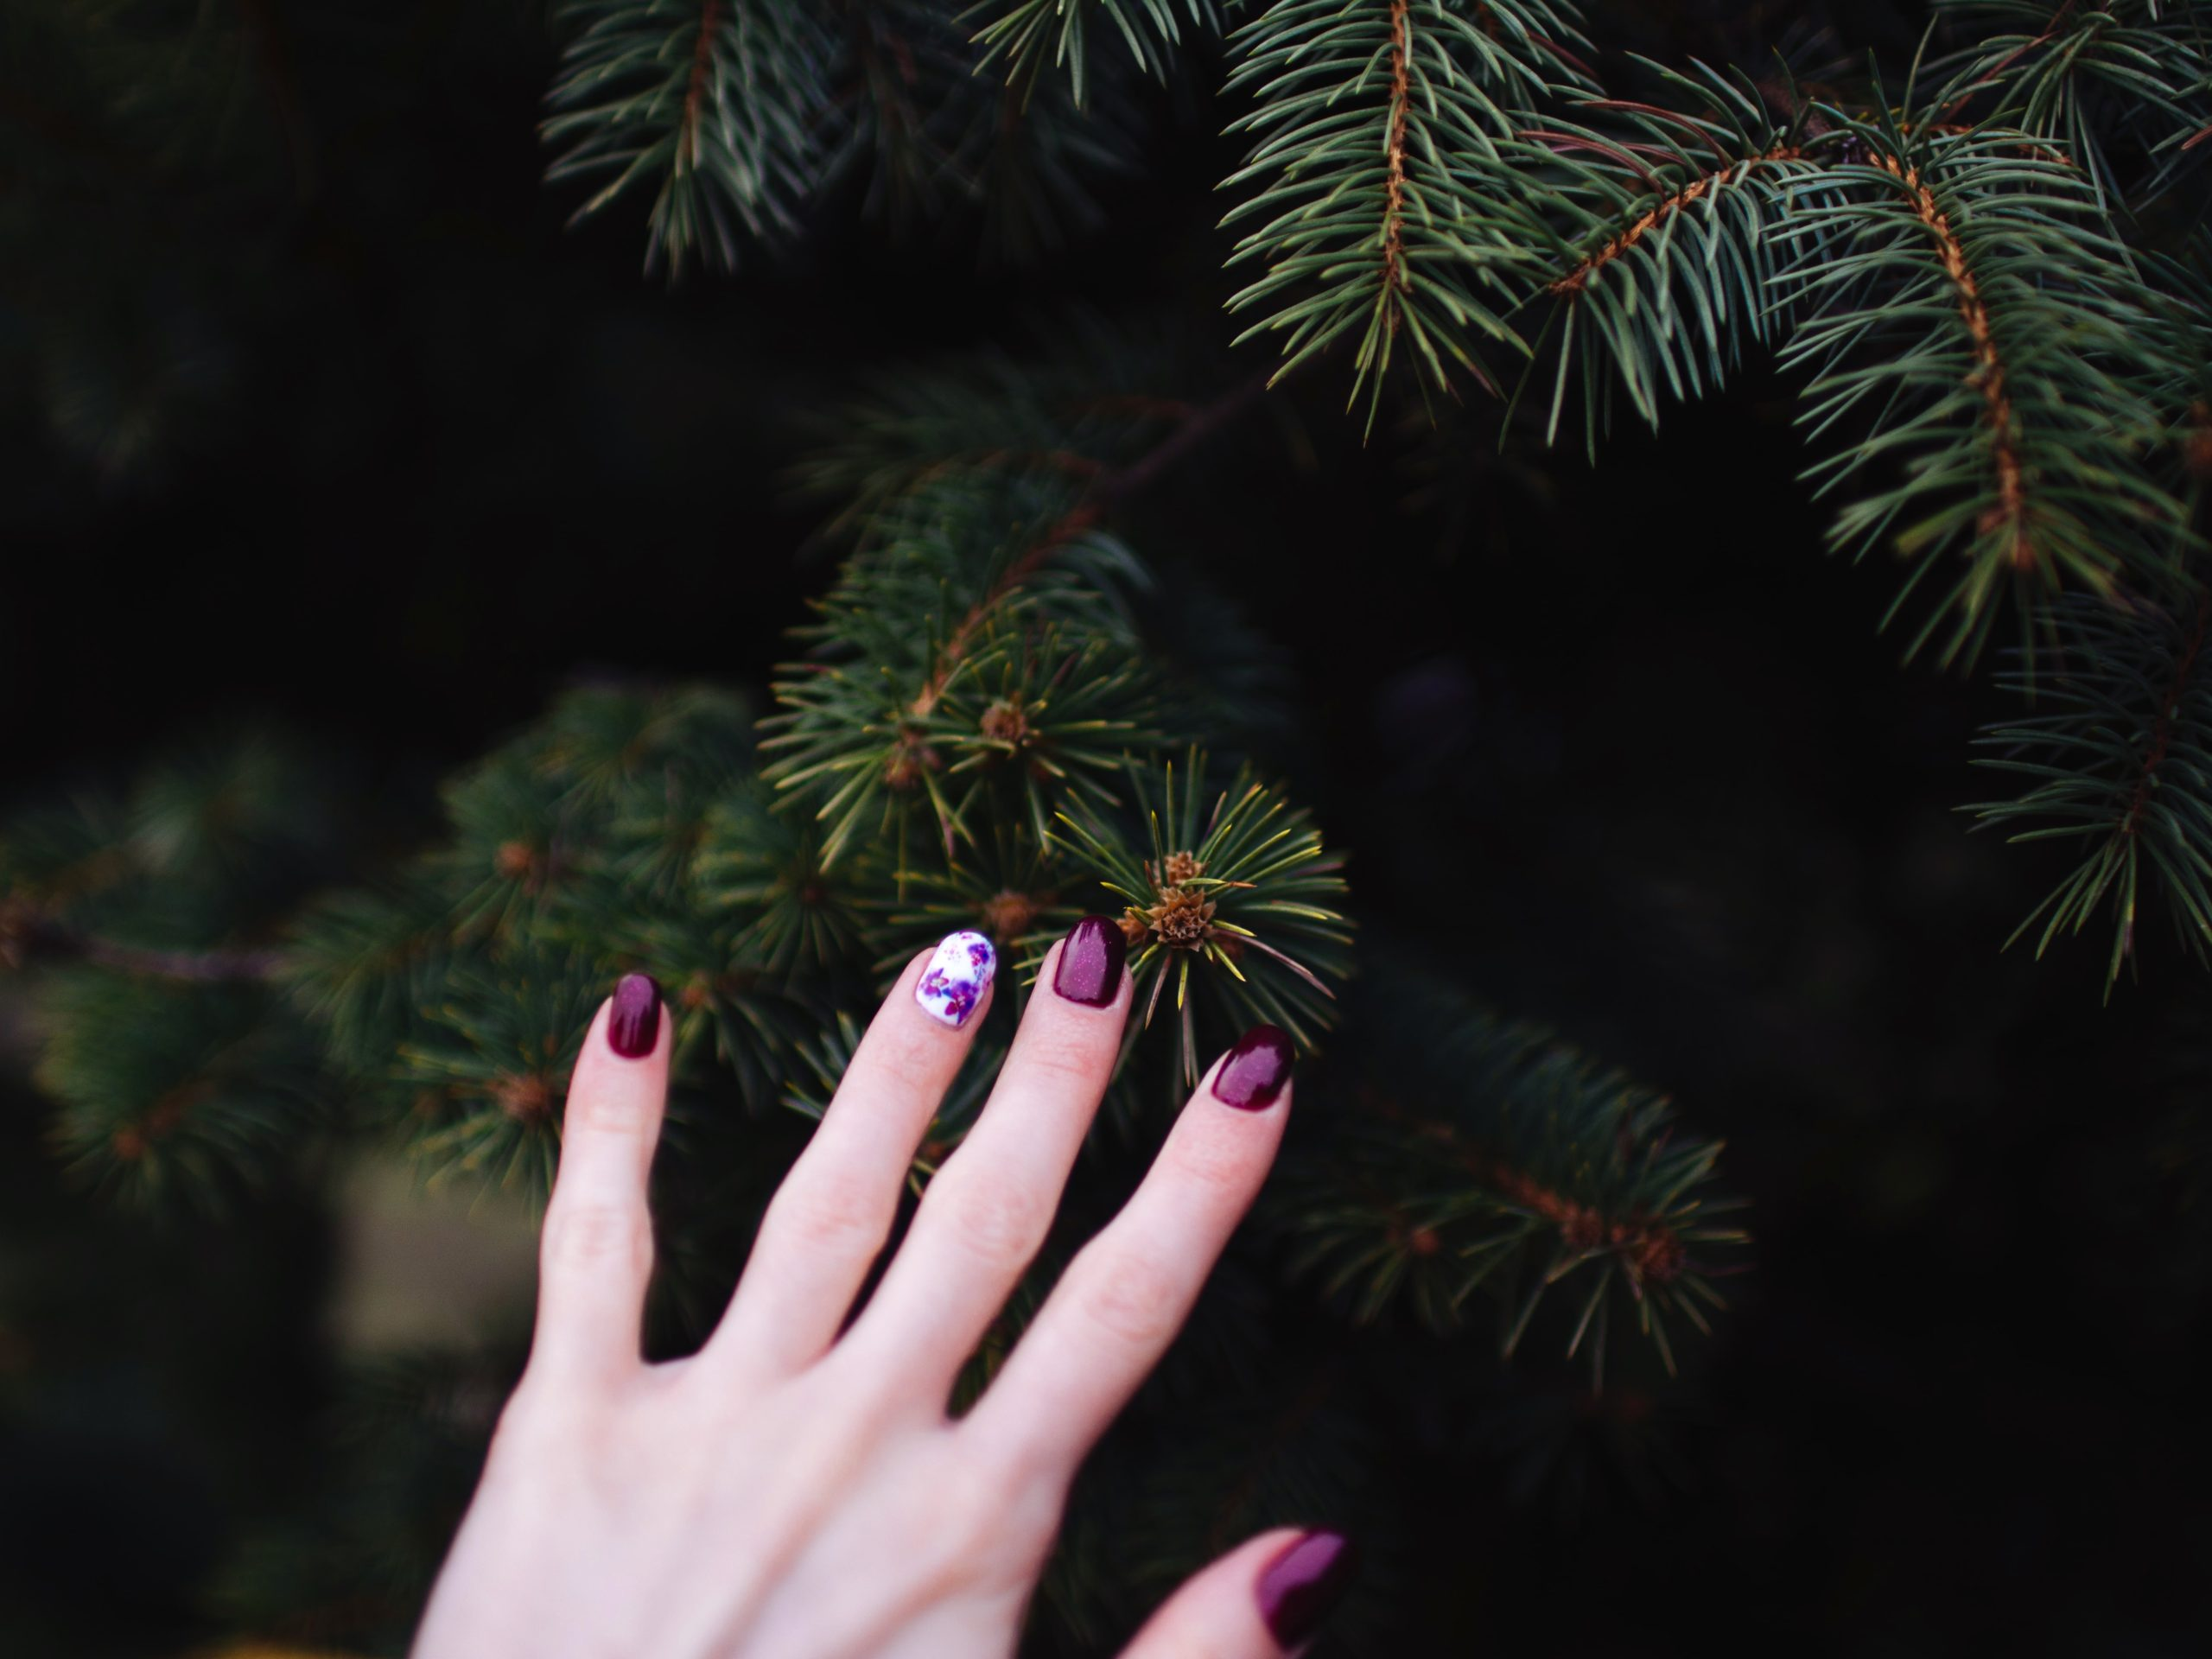 Touching the fir tree with red nail fingers